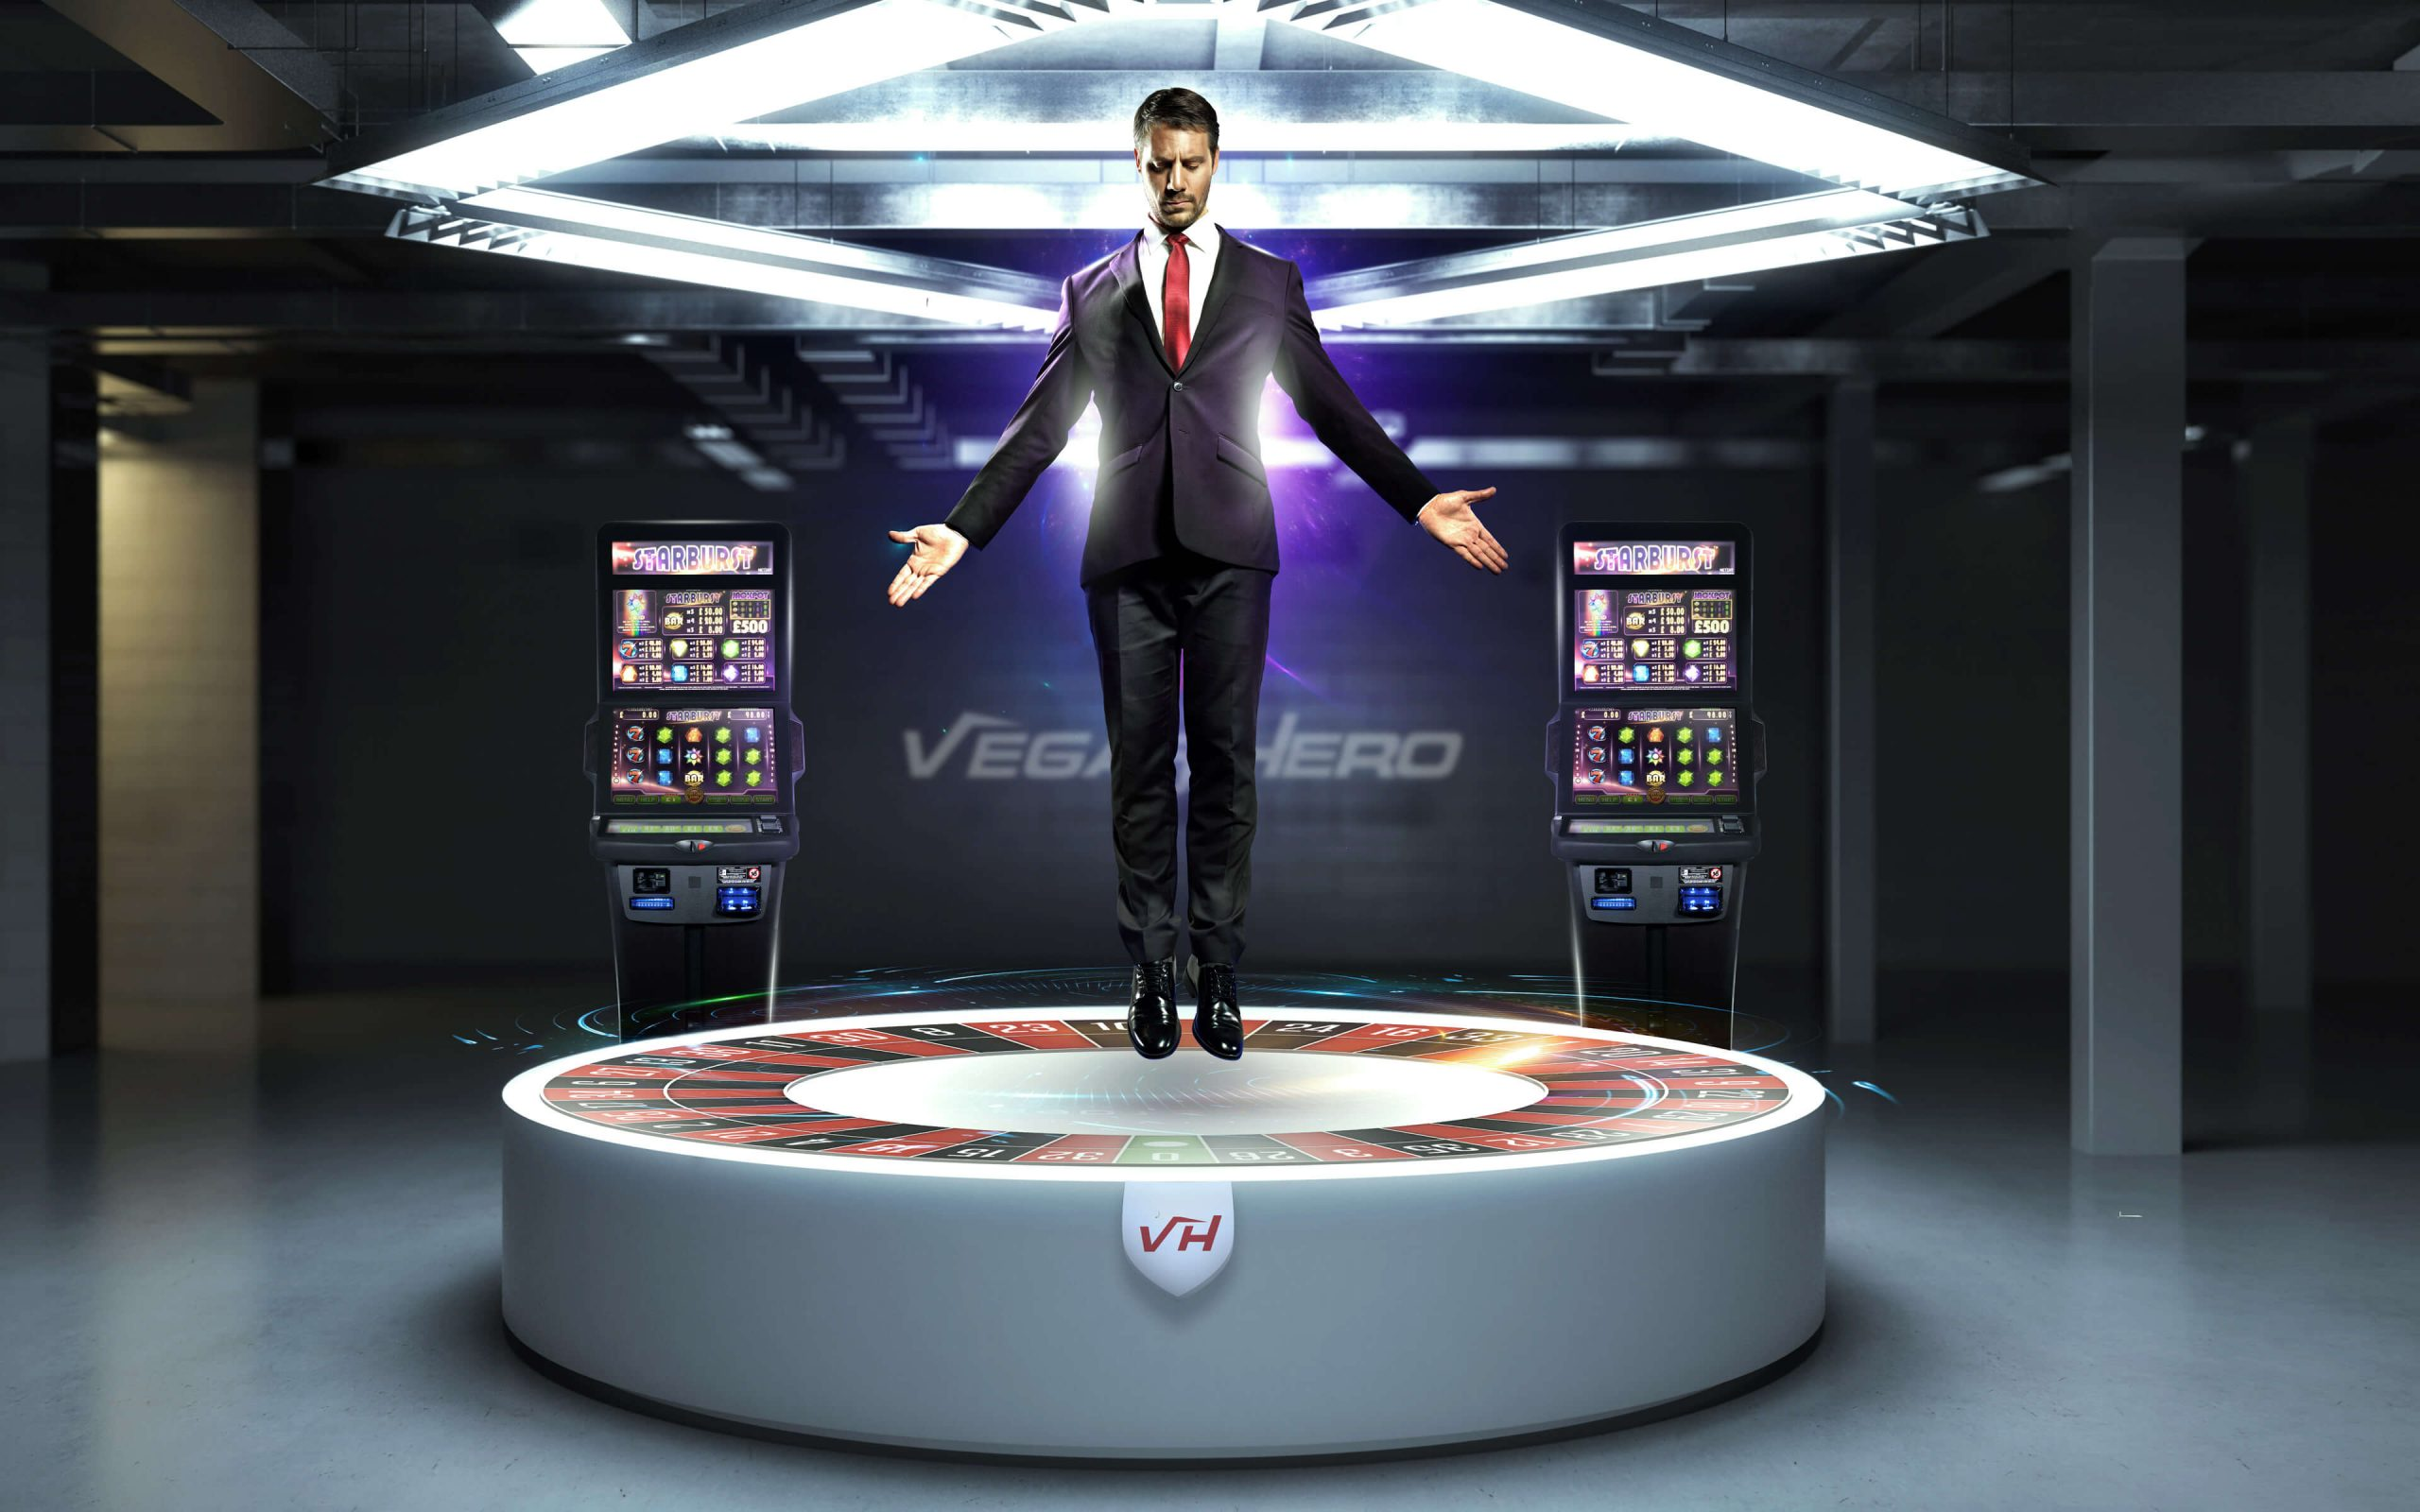 vegas hero advertise - man levitating between two slots and above the roulette wheel